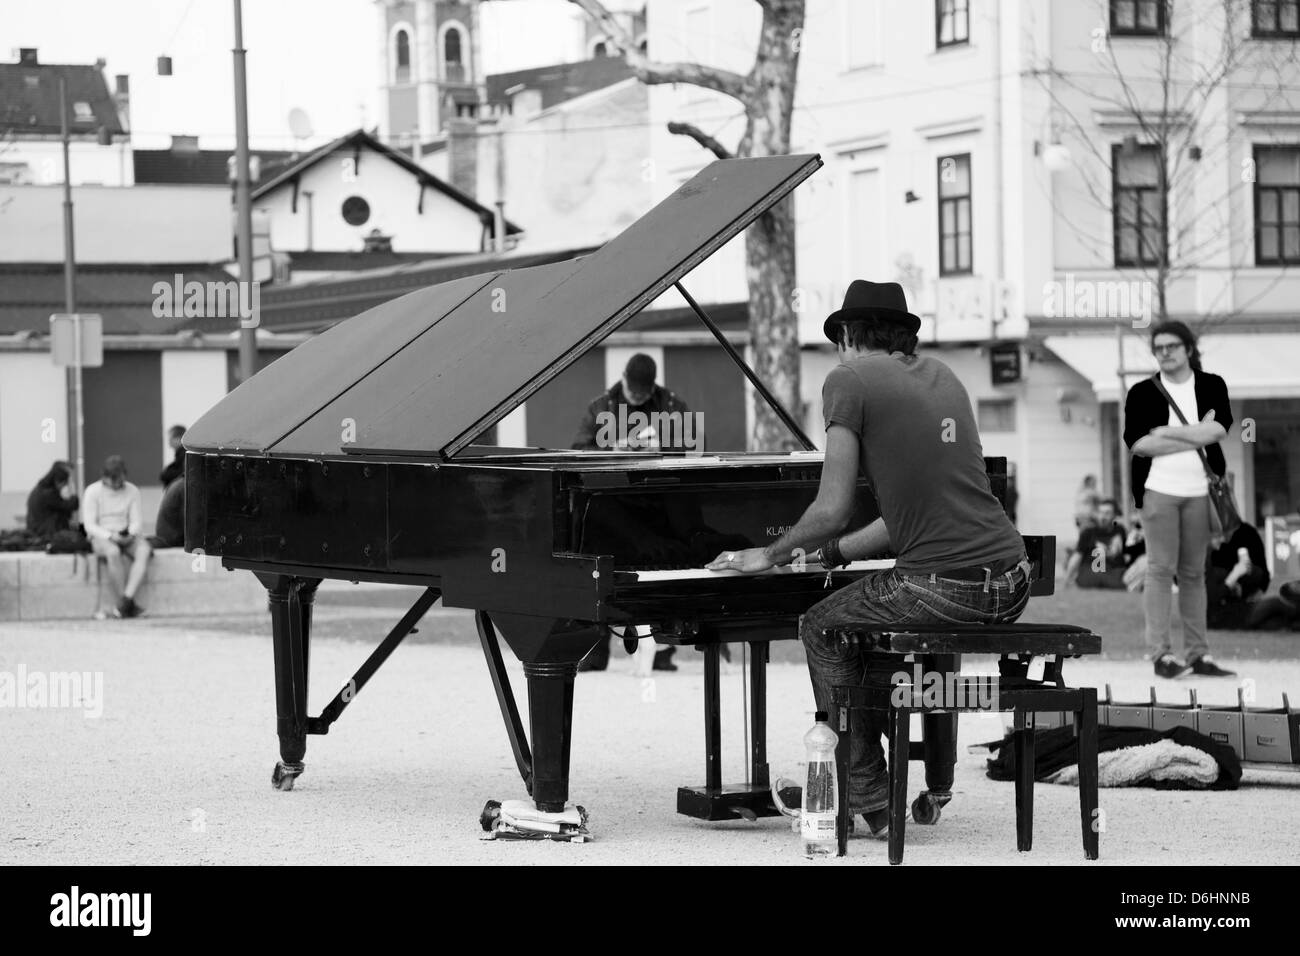 Davide Martello, AKA Klavierkunst (piano art), plays his black grand piano in the park of Kongresni Trg, Ljubljana, - Stock Image